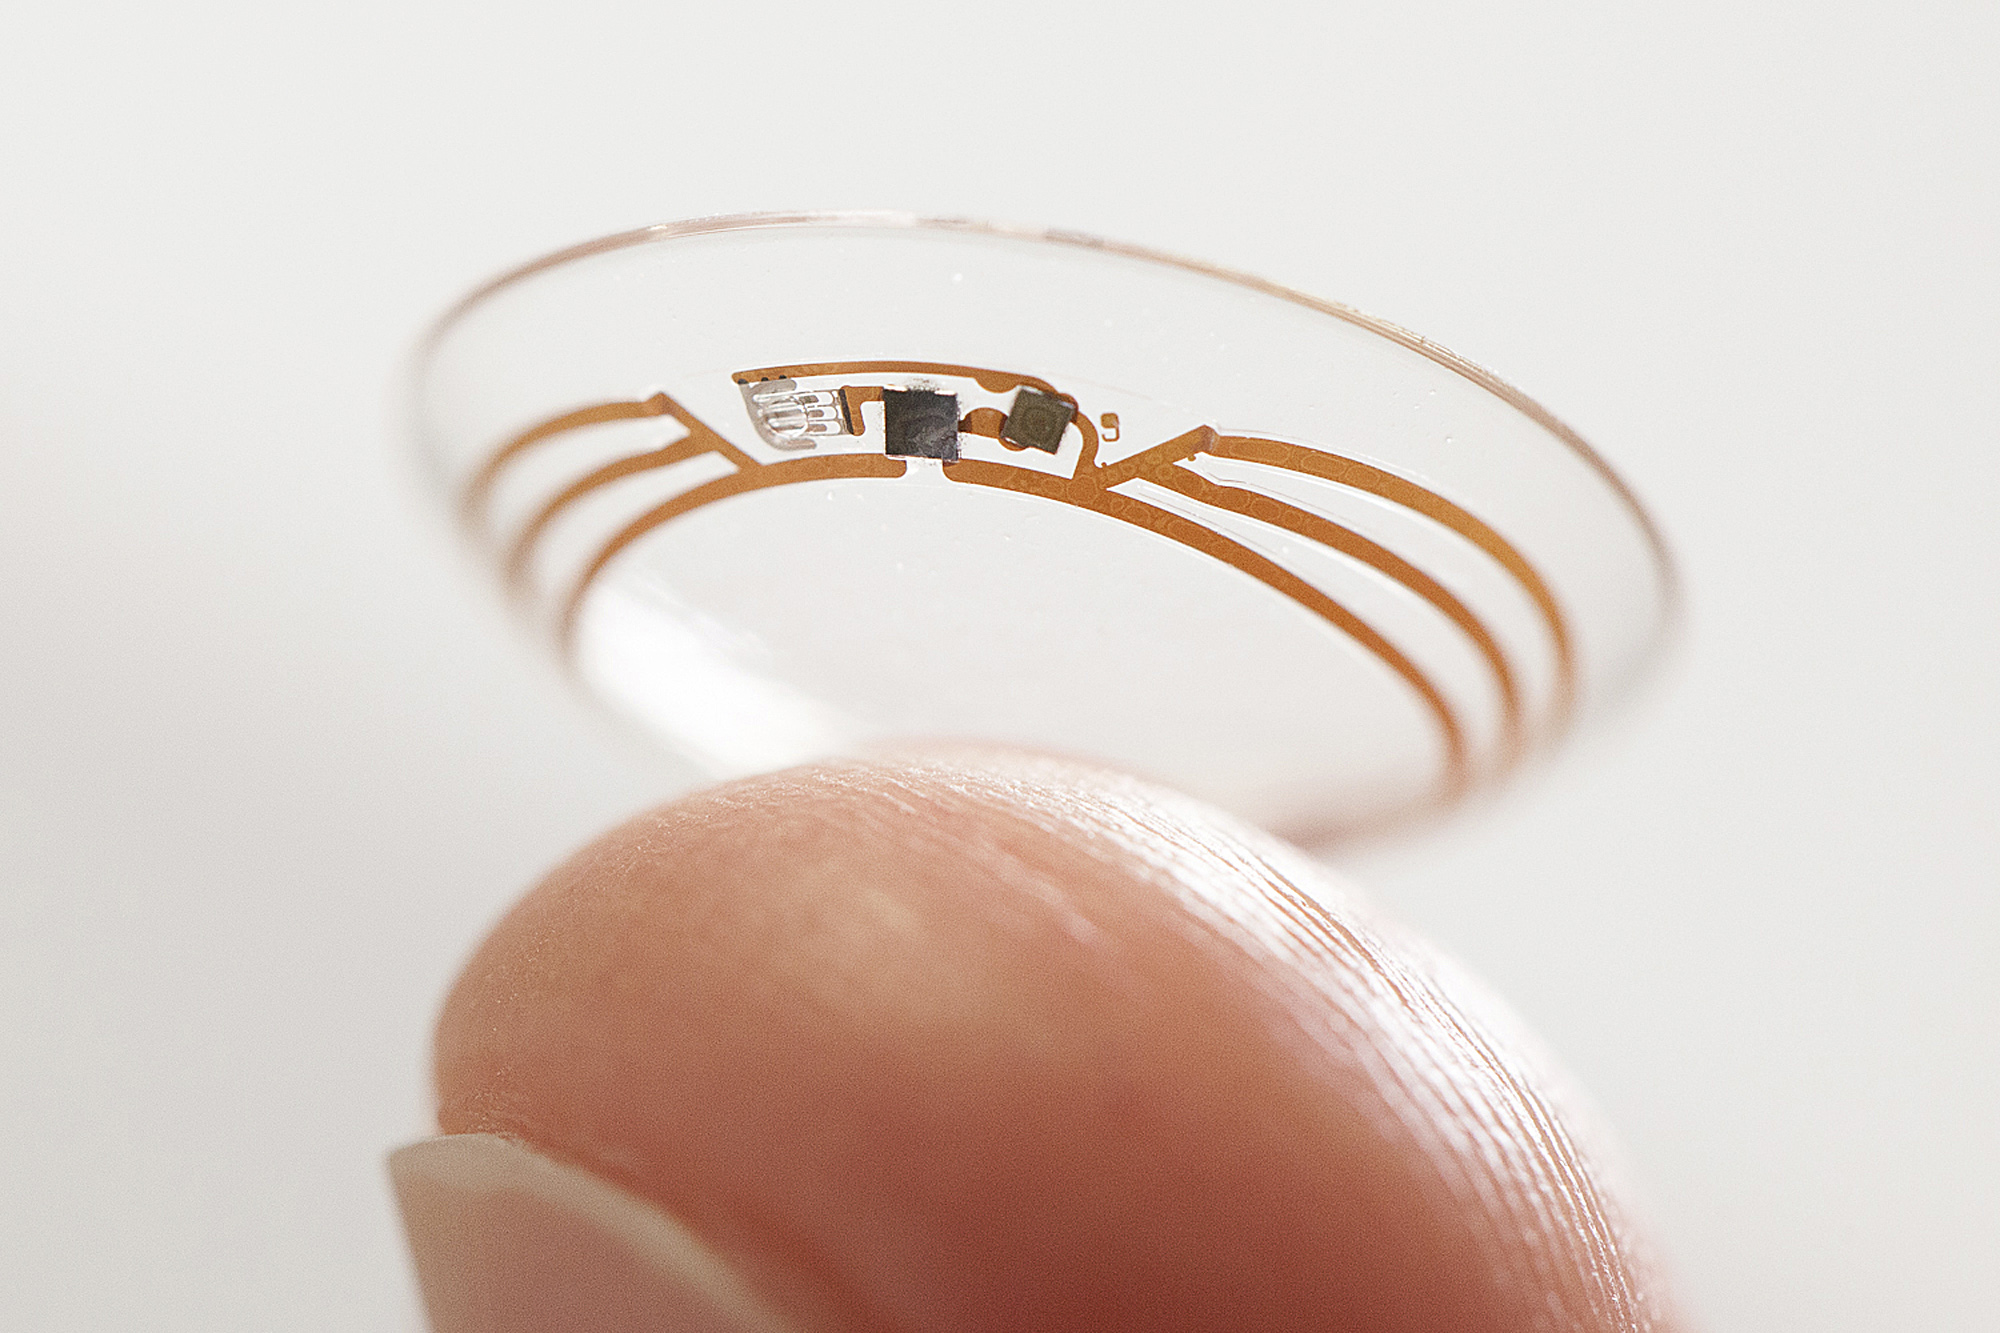 Google's smart contact lenses.